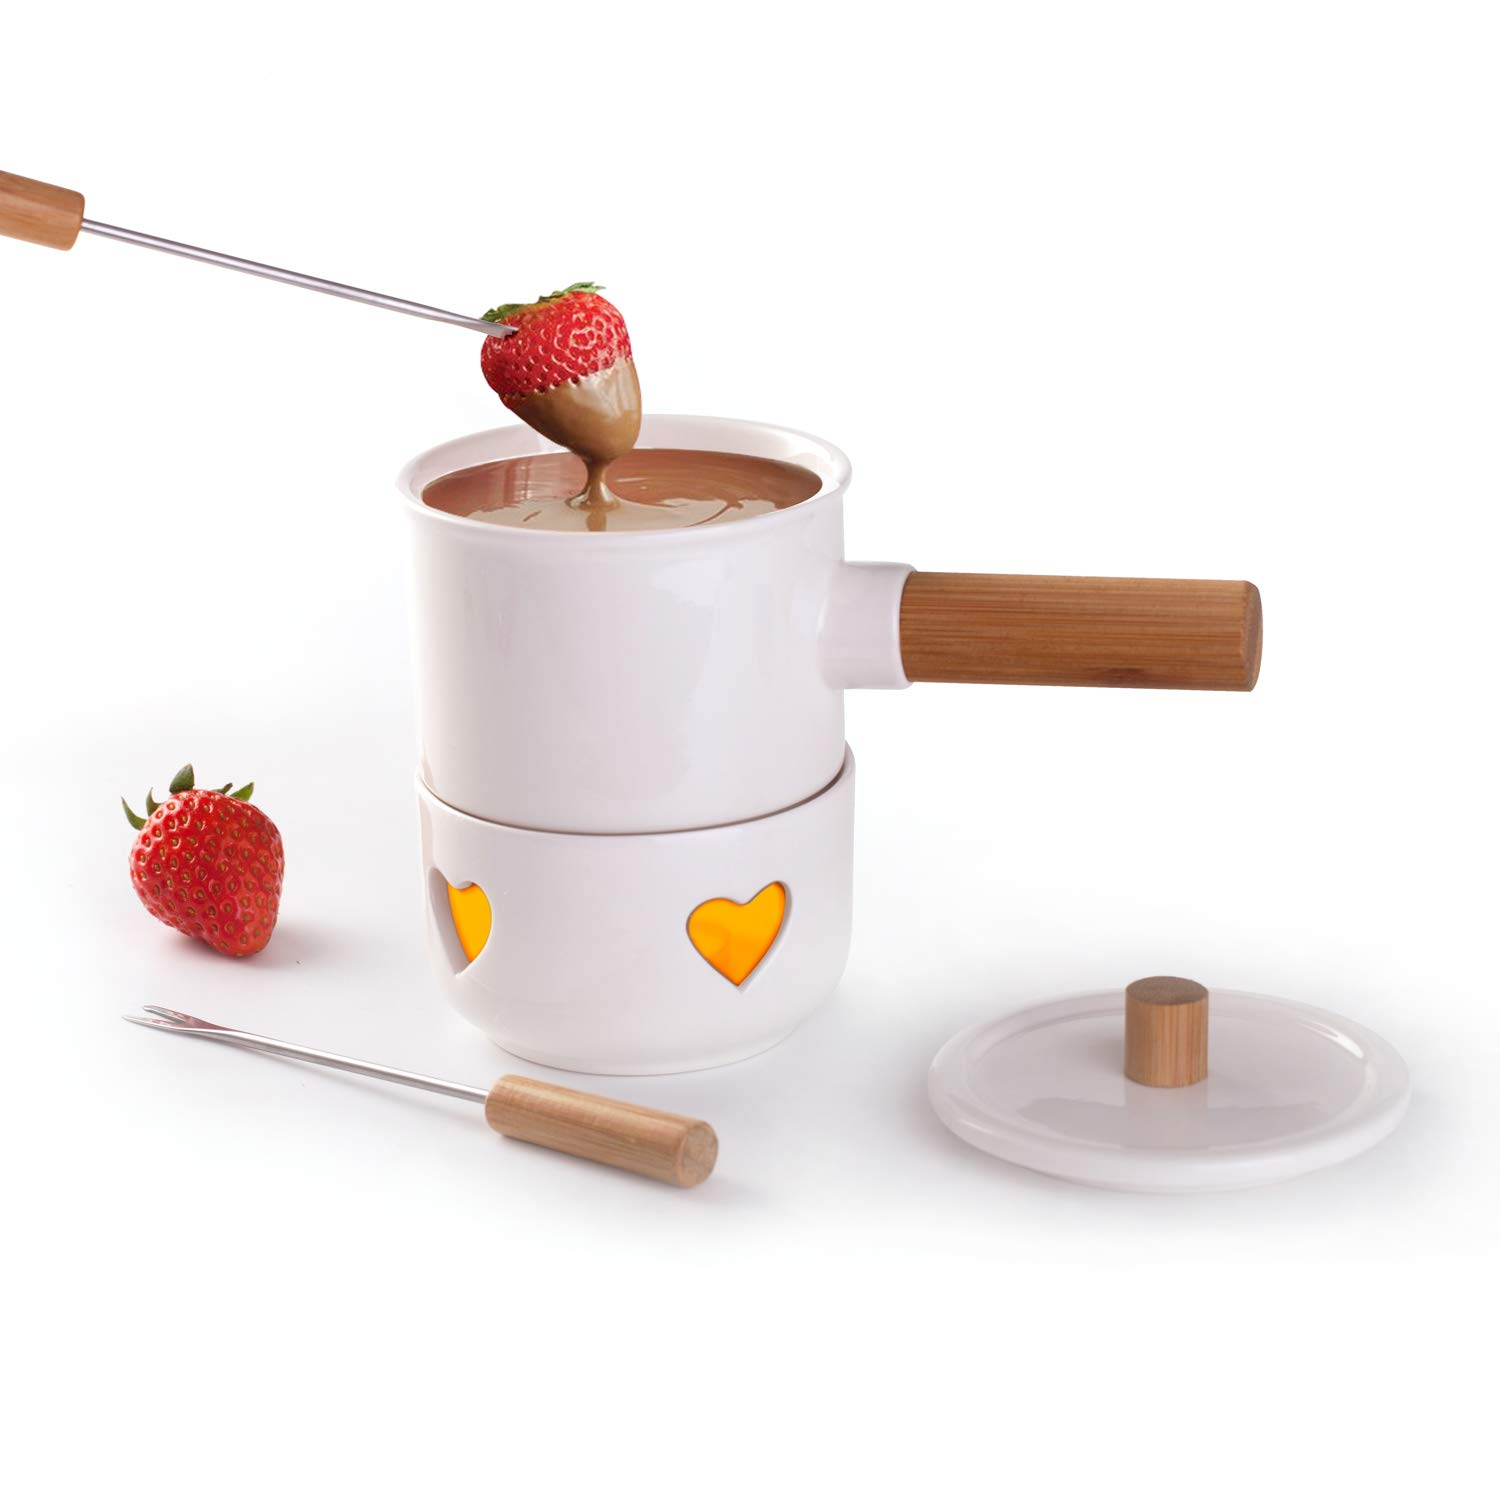 Sunbright Tapas Fondue Set with Bamboo Handle & 2 Forks,Melting Pot for Cheese,Chocolate, Heated by Tea Light,White, New Bone China Sunbright Decor